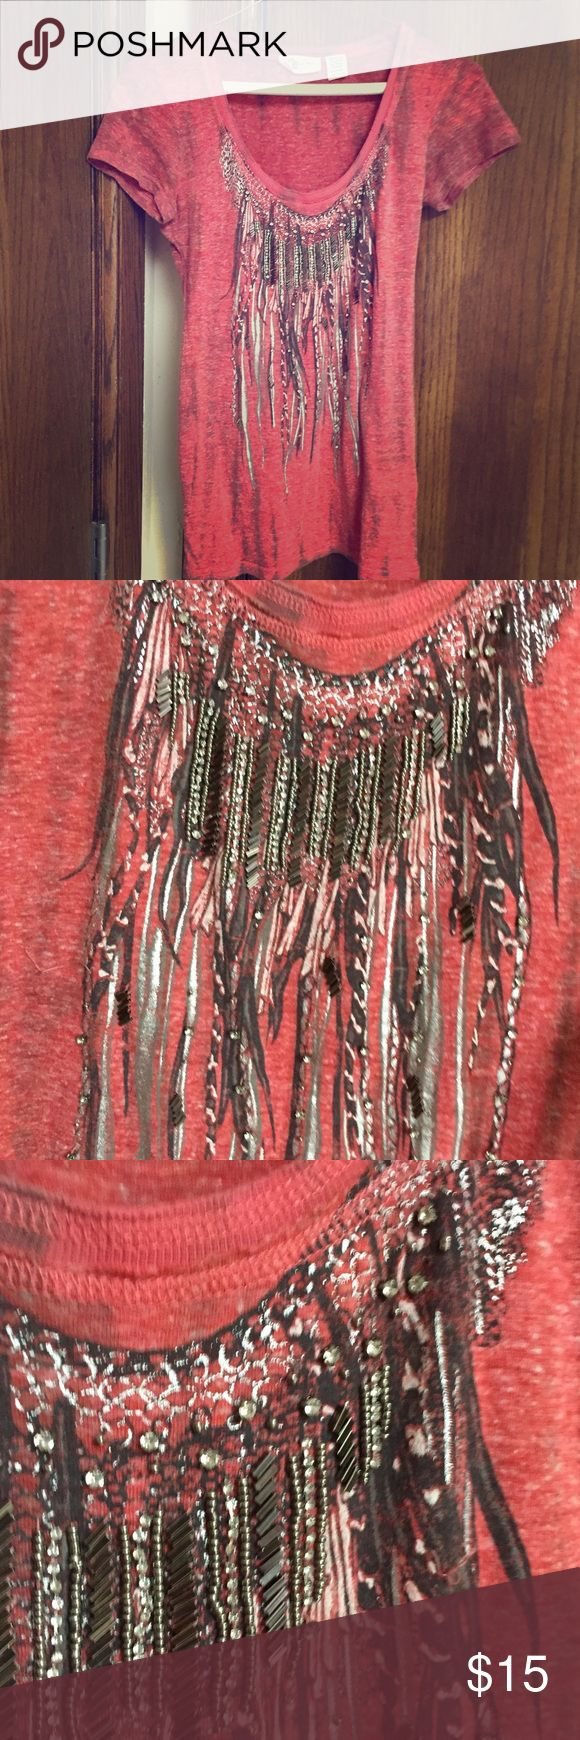 Miss Me Sequin Top Miss Me brand too with sequin and bead embellishments. Is an older piece but has very little visible wear and is in great condition, all heading is intact and the fabric is super soft, it's a size small, but feels a little snug for a small Miss Me Tops